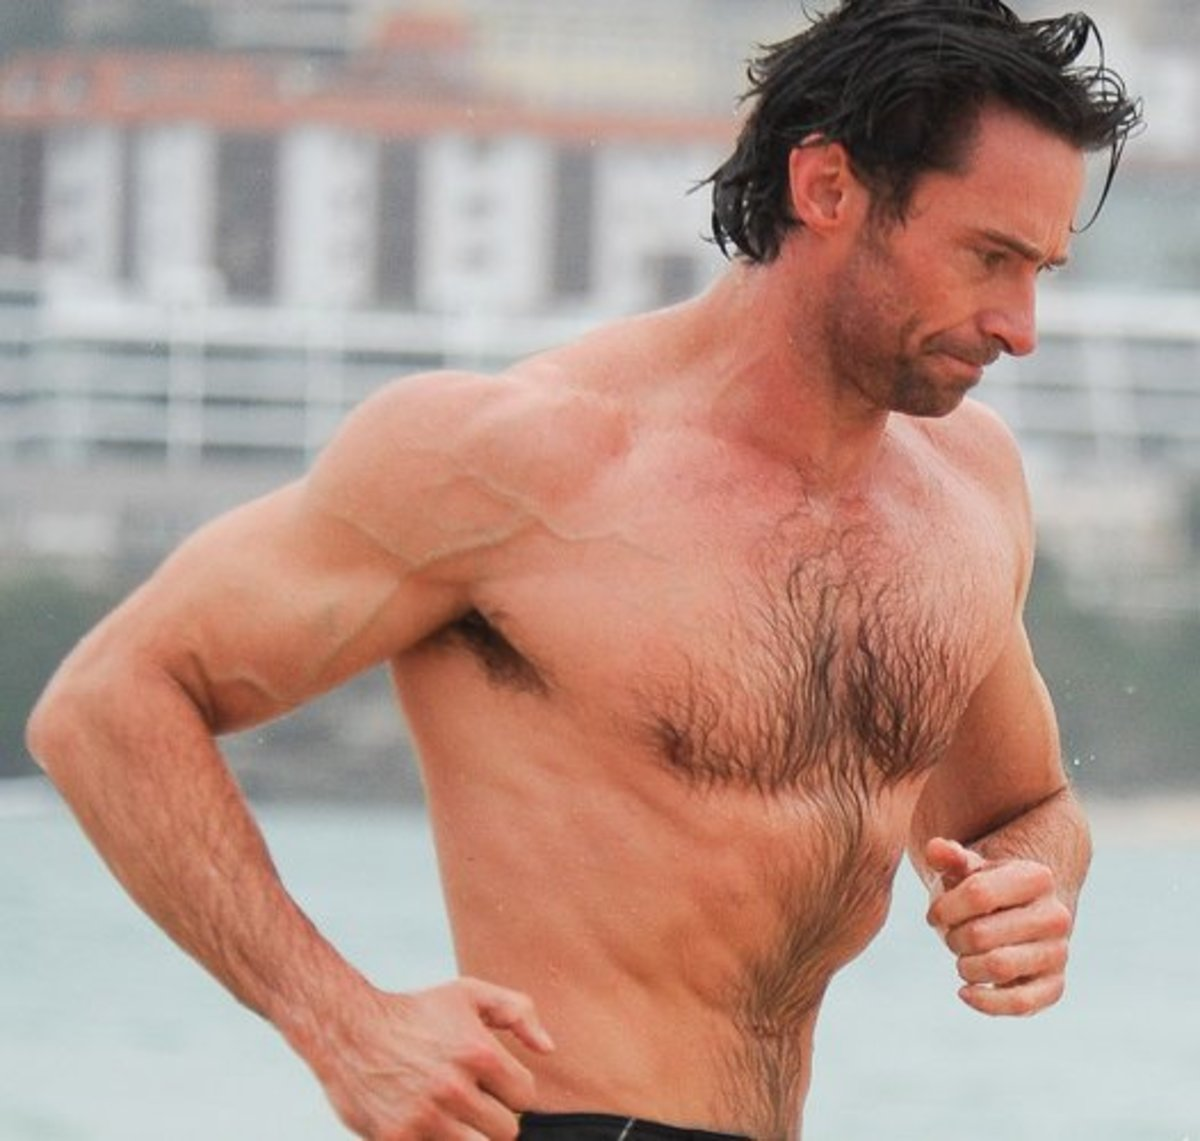 Hugh Jackman is living proof that chest hair on men, in the right amount of course, looks sexy and hot as hell. Notice the Tiger Line? Read on and find out if your girl will like your chest hair or not.